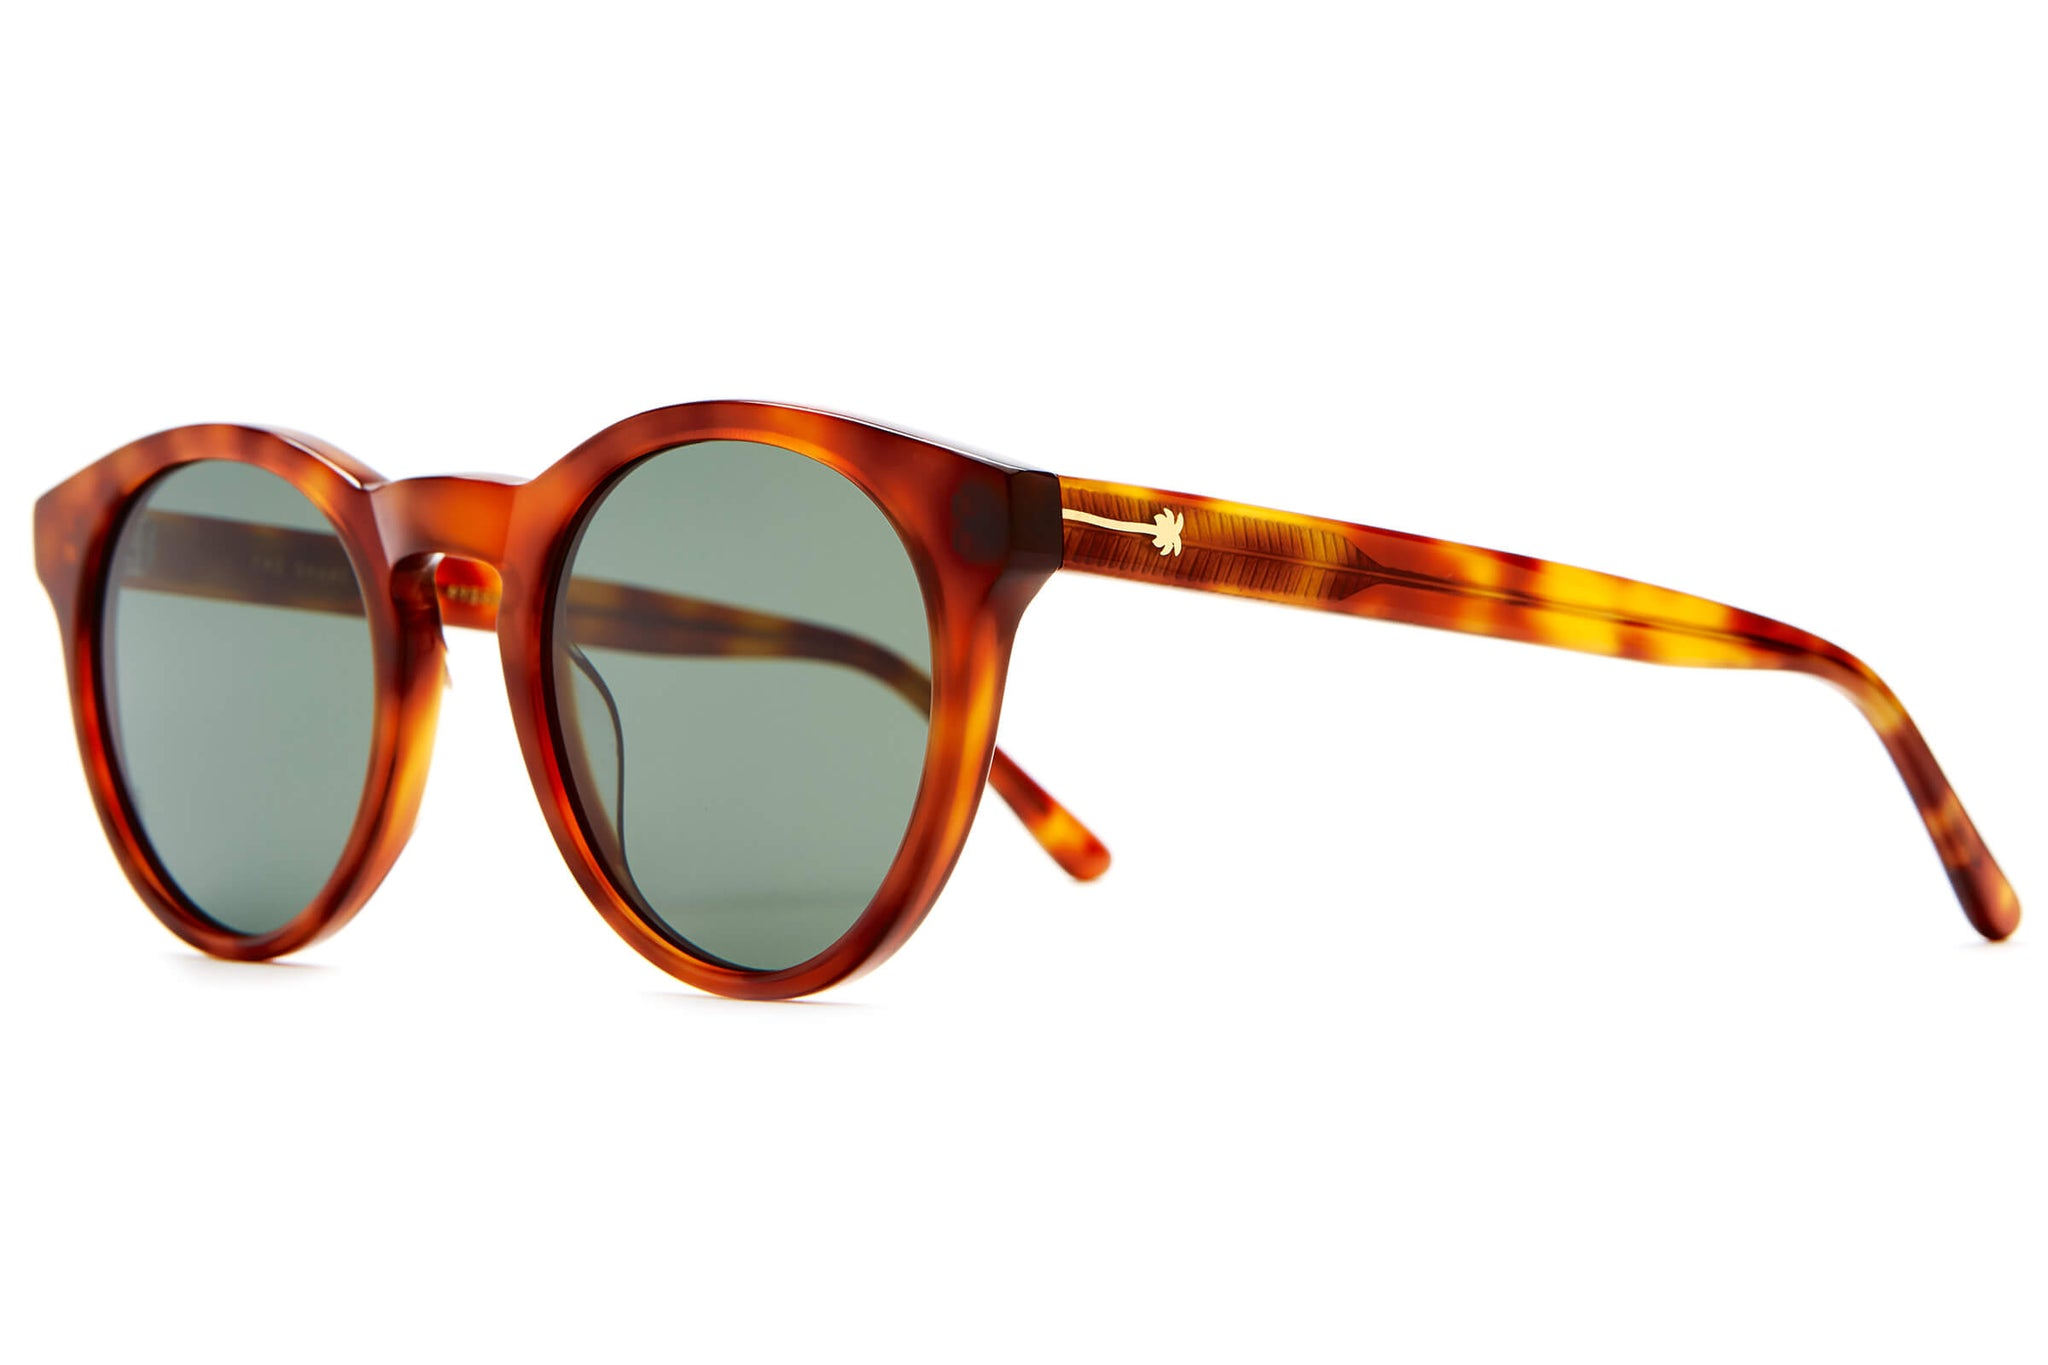 The Shake Appeal - Havana Tortoise - / Polarized G15 - Sunglasses